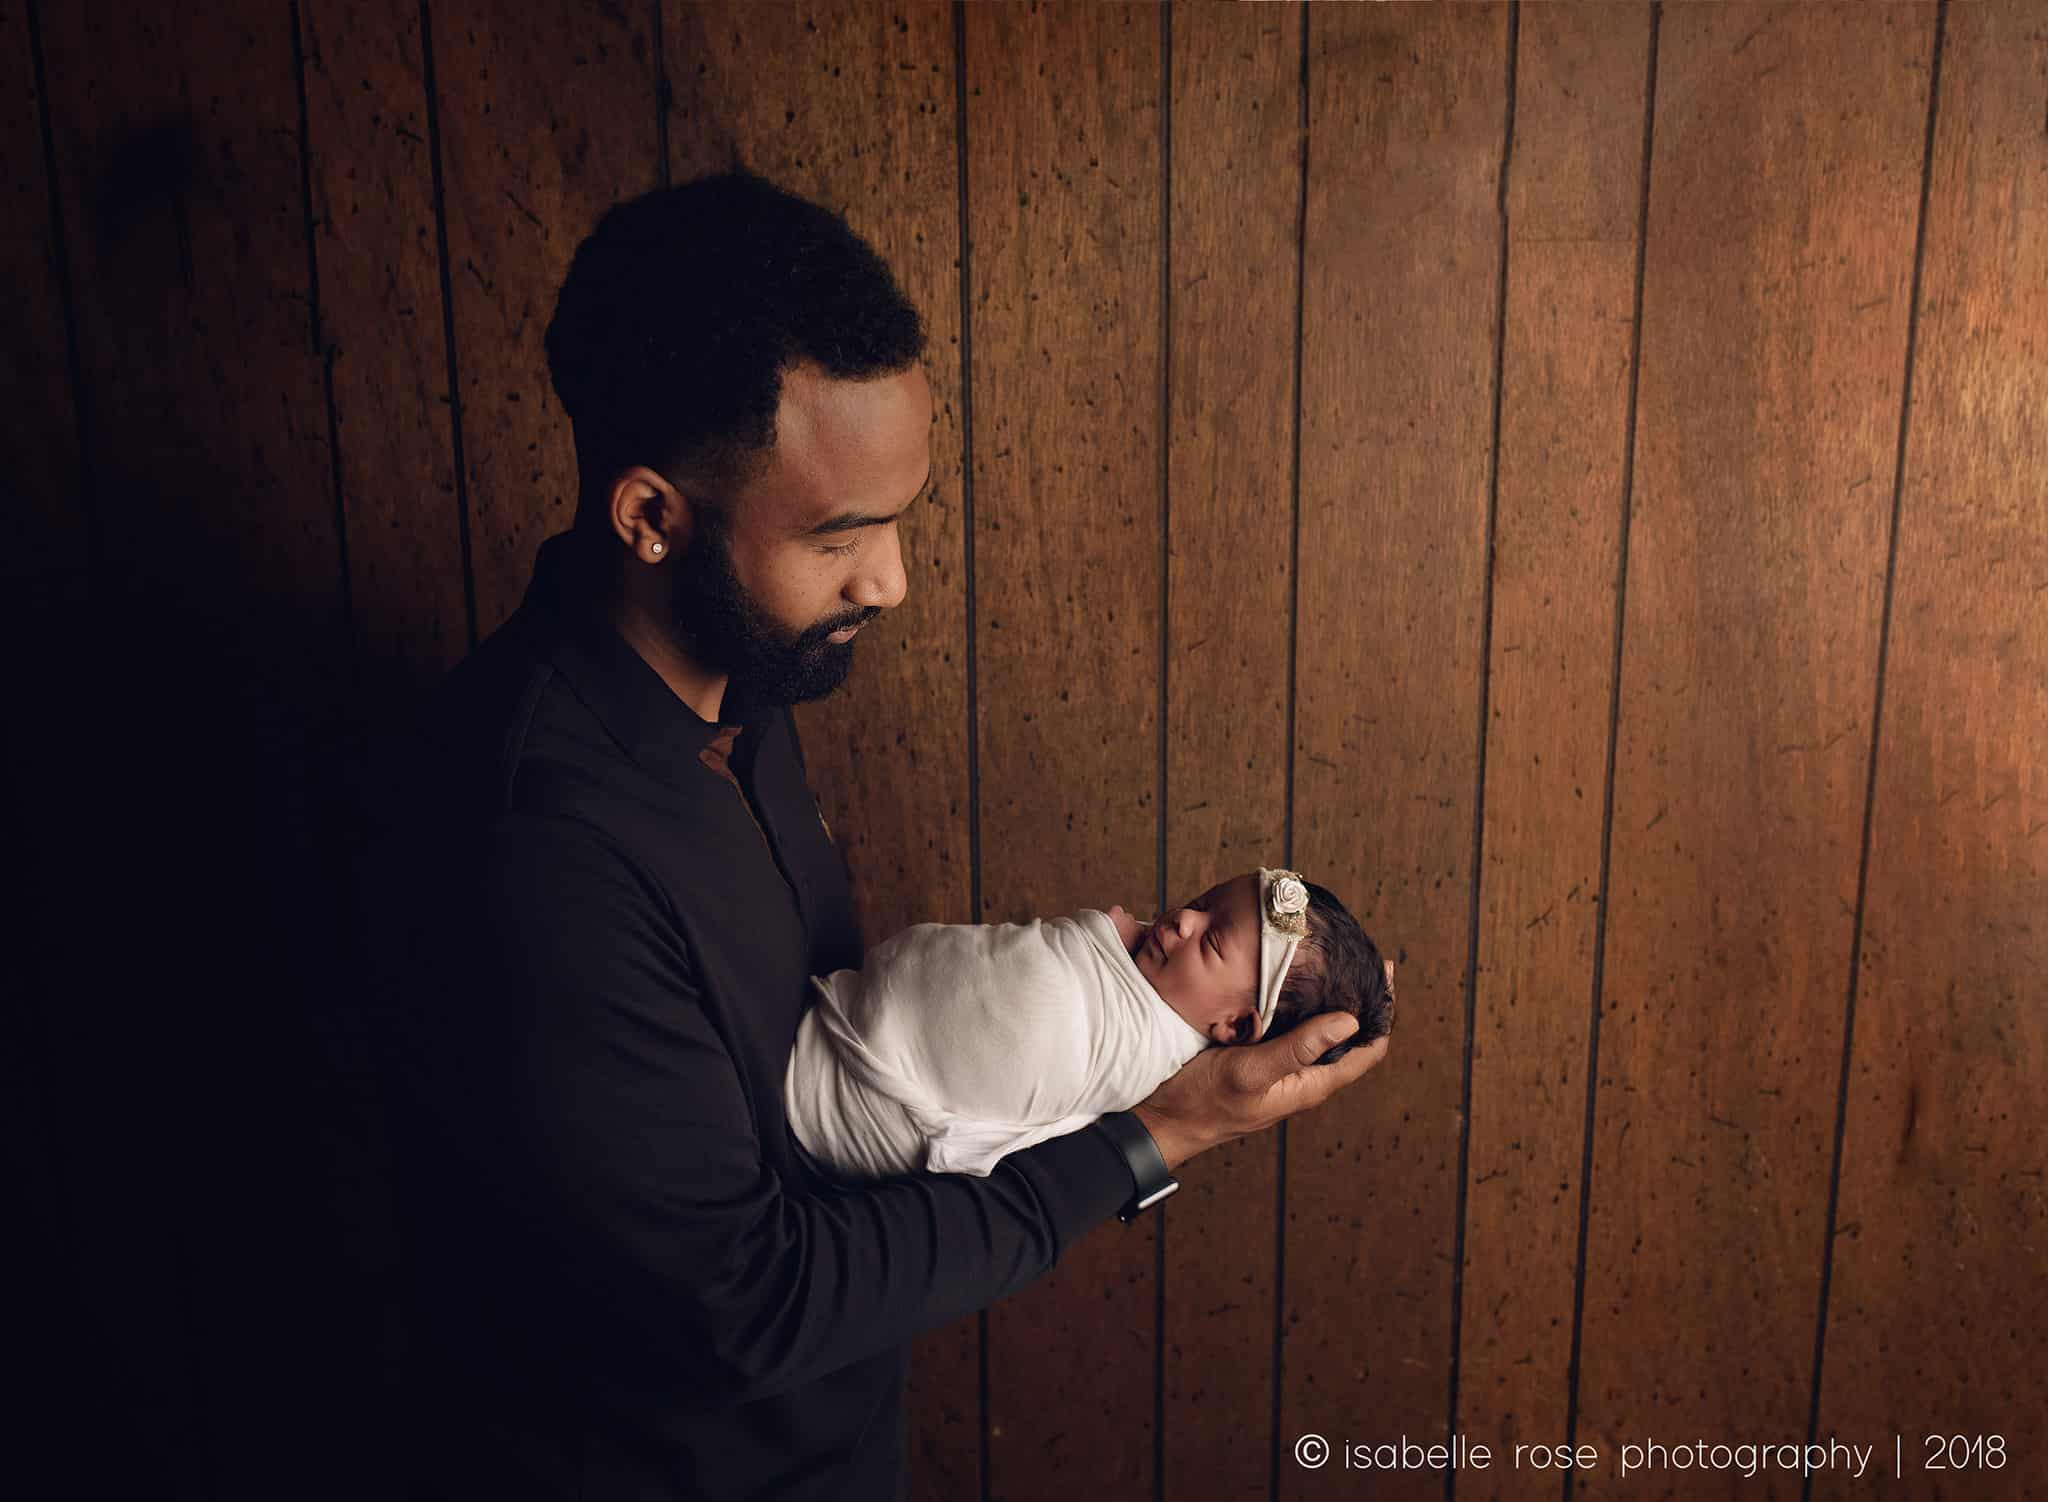 07172018 baton rouge la infant photographer father holding wrapped baby